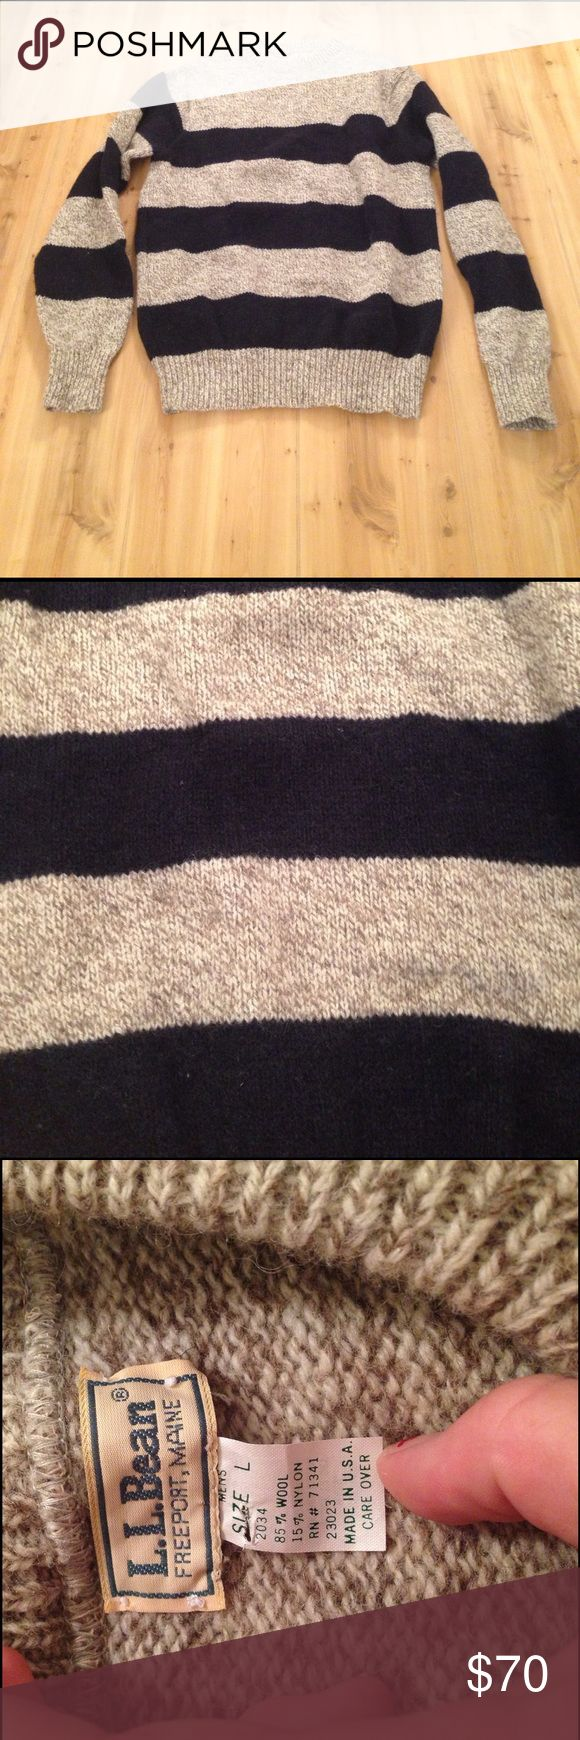 Was $70 L.L Bean Wool Sweater Mens Large wool sweater great condition L.L. Bean Sweaters